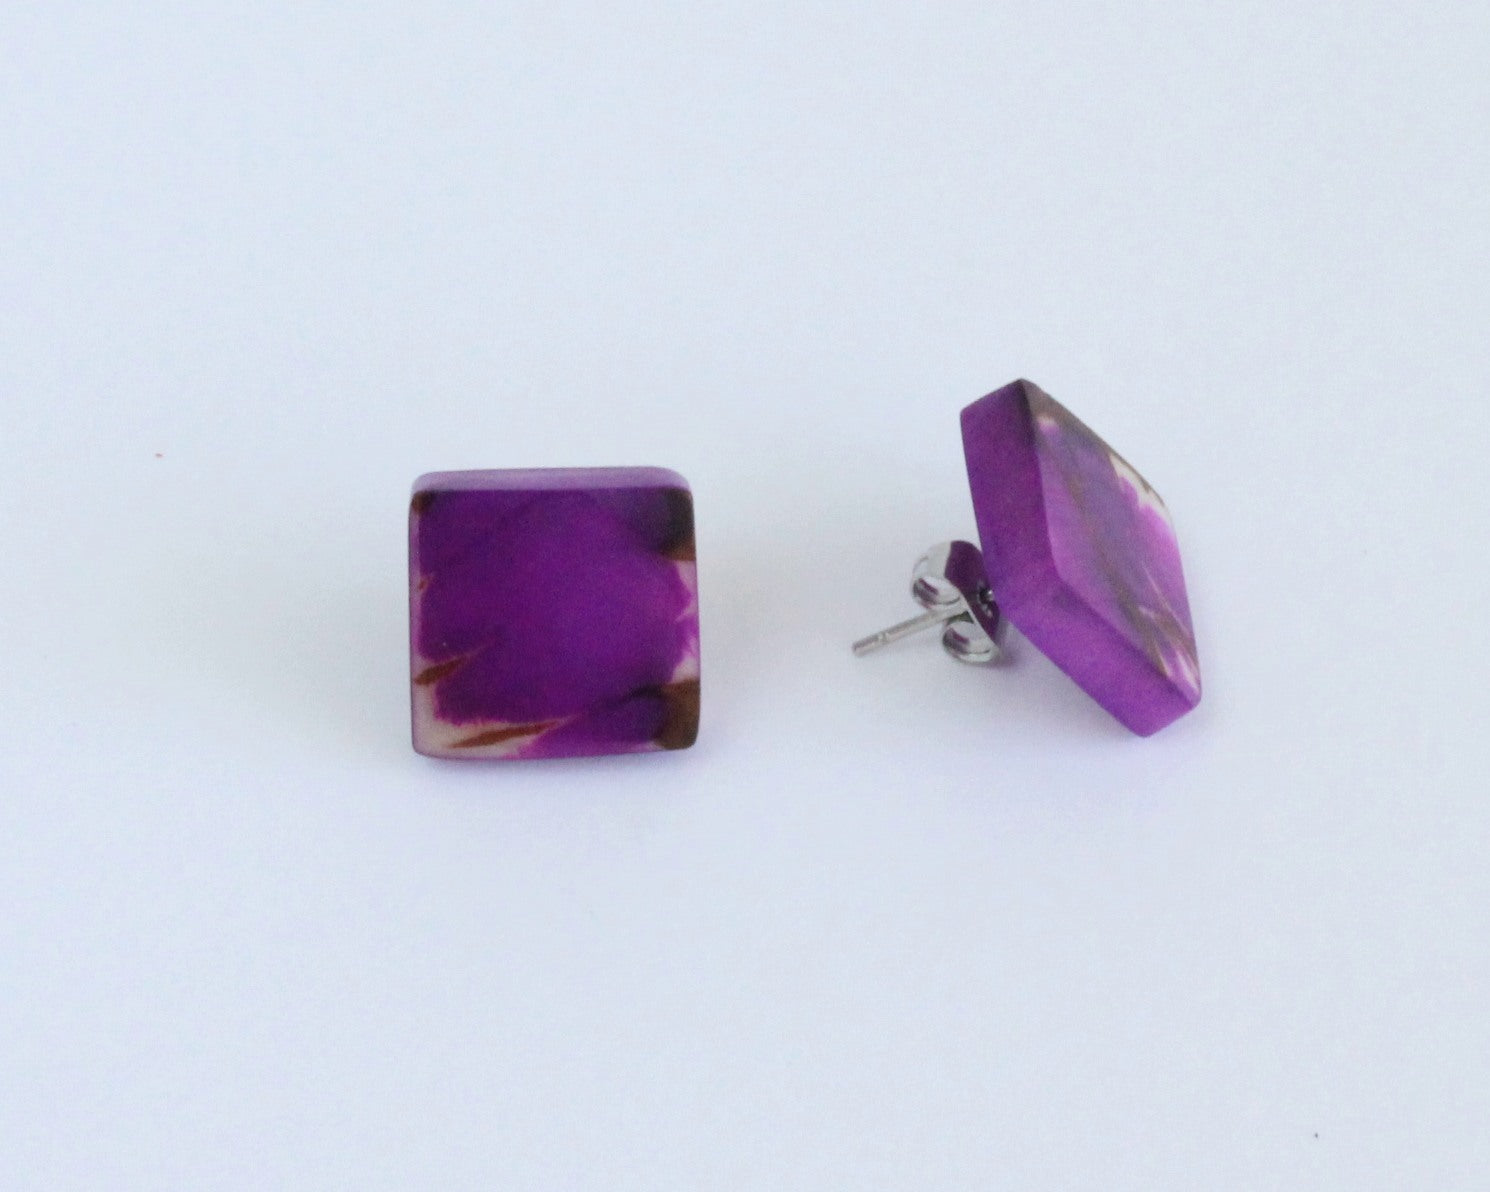 Handmade earring, sustainable, tagua, stud, push back, purple, side